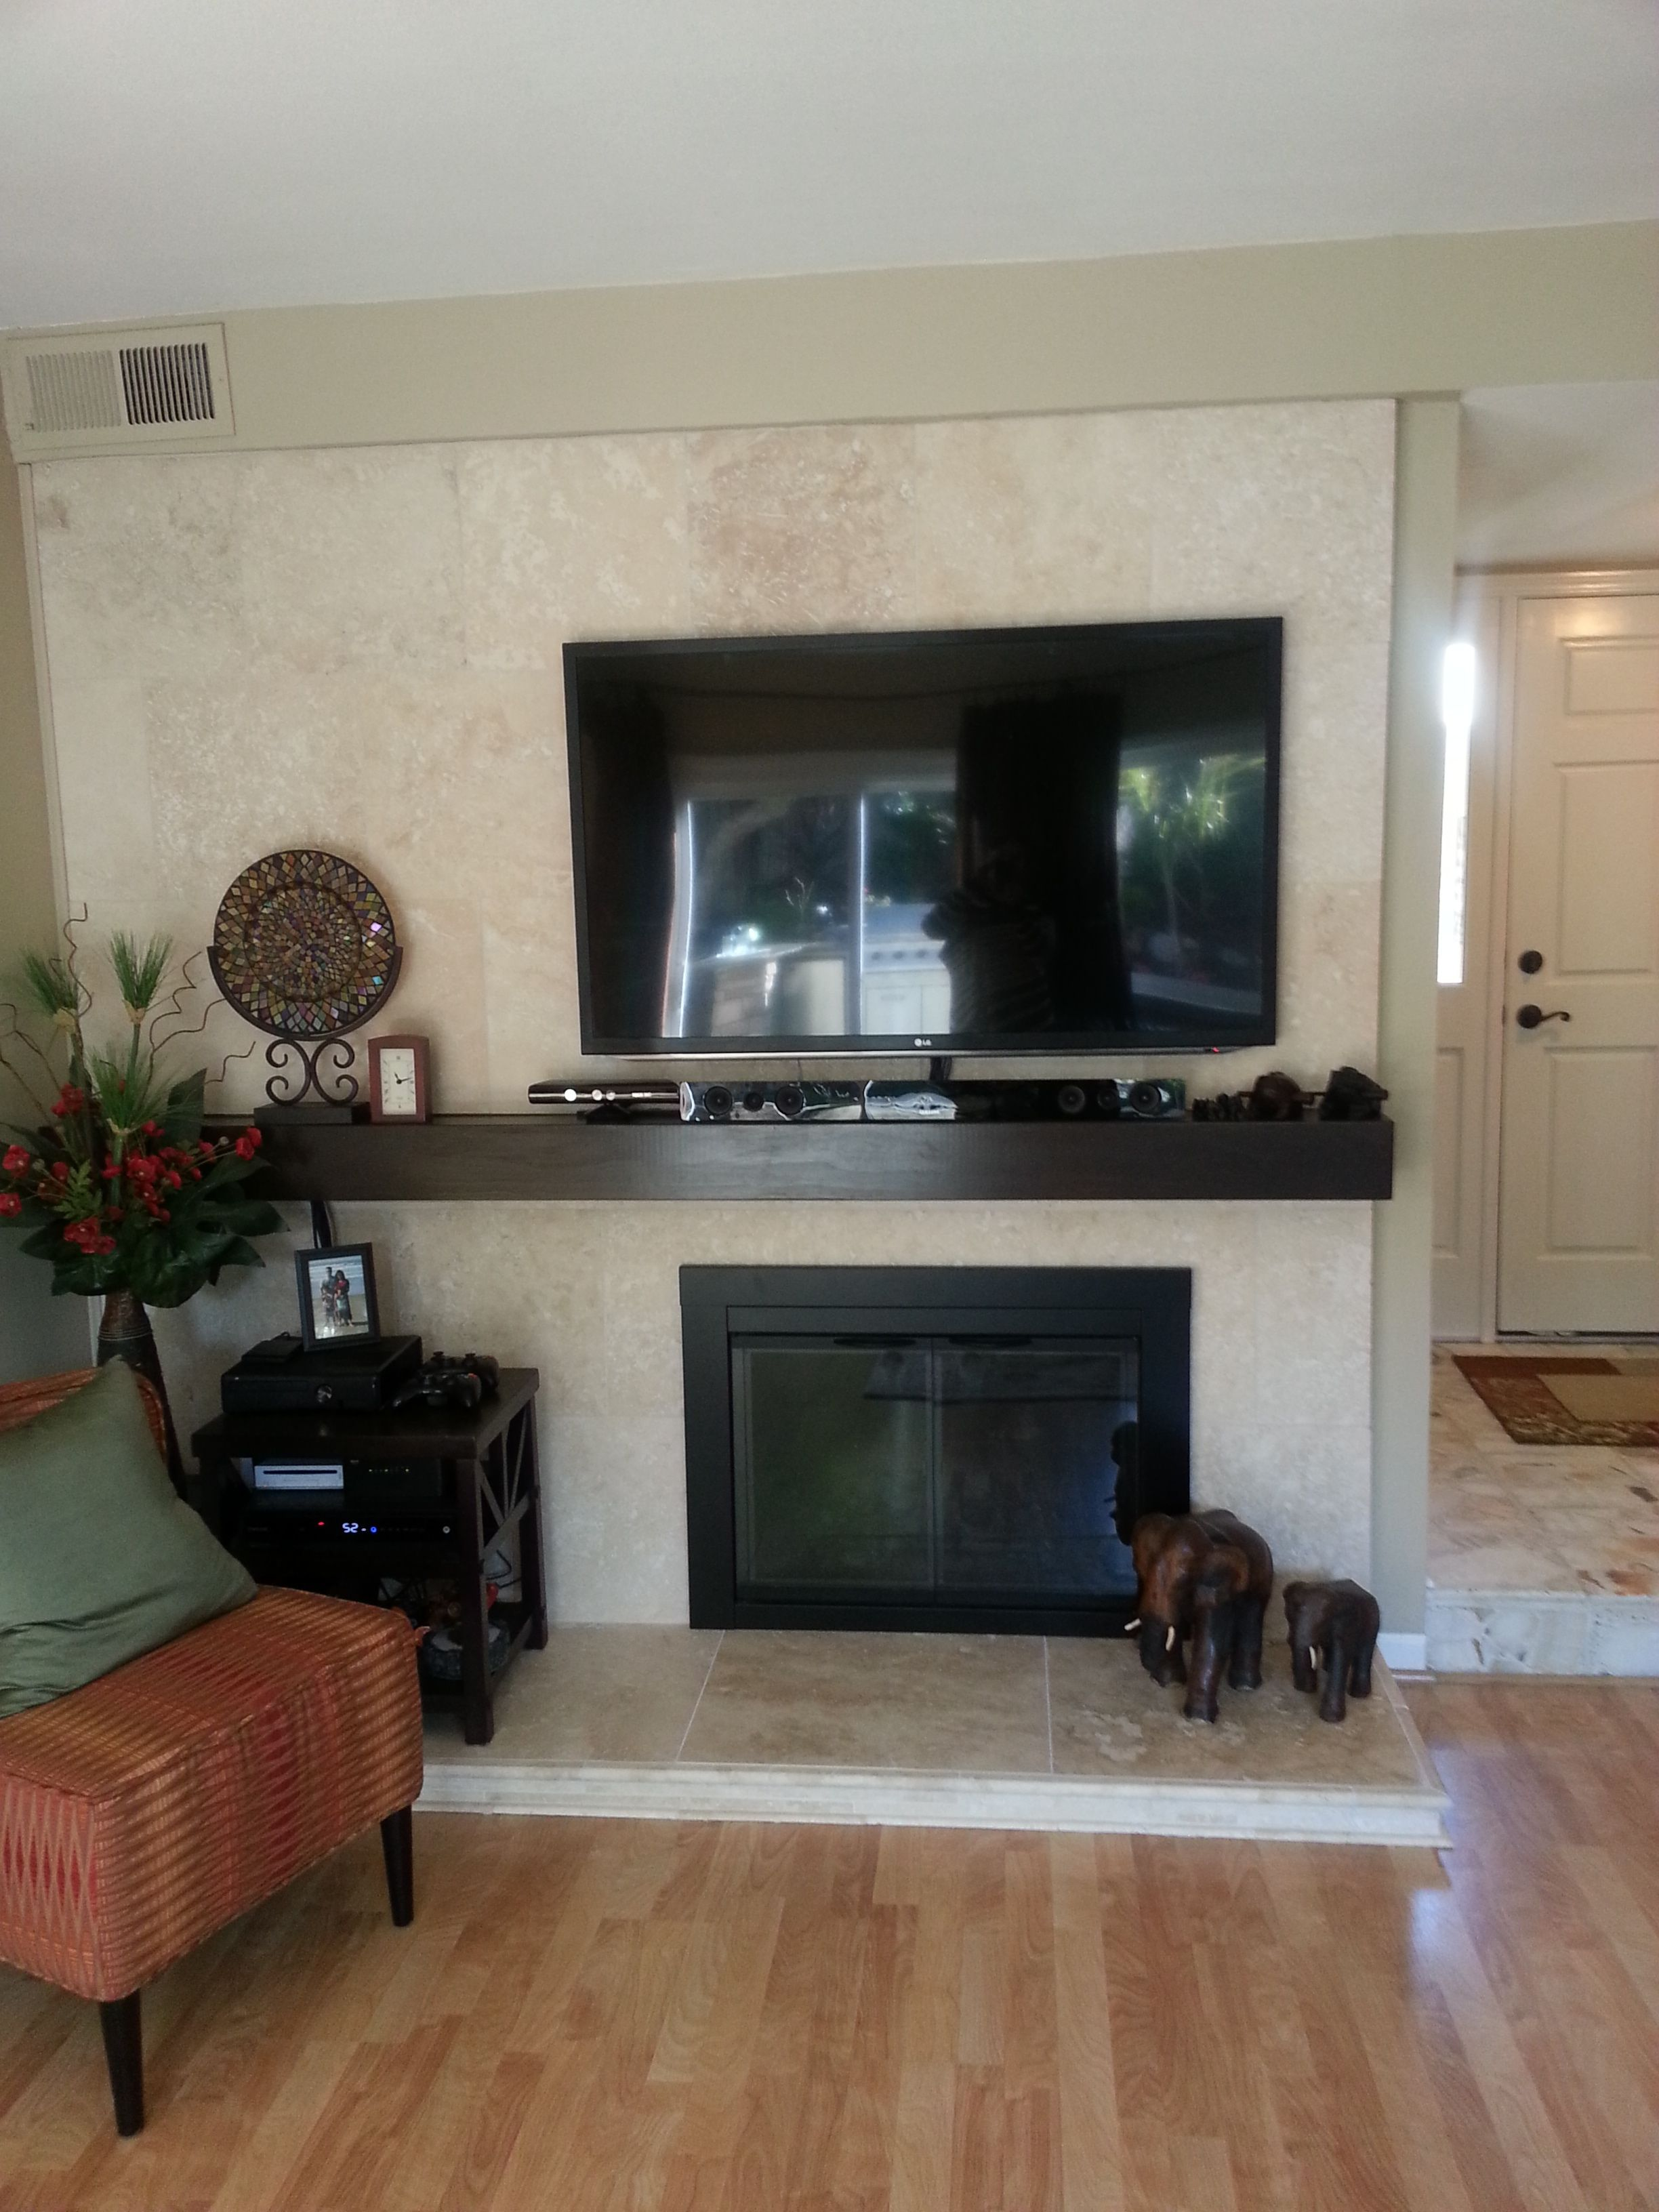 limestone or travertine tile as fireplace surround. used 18 x 18